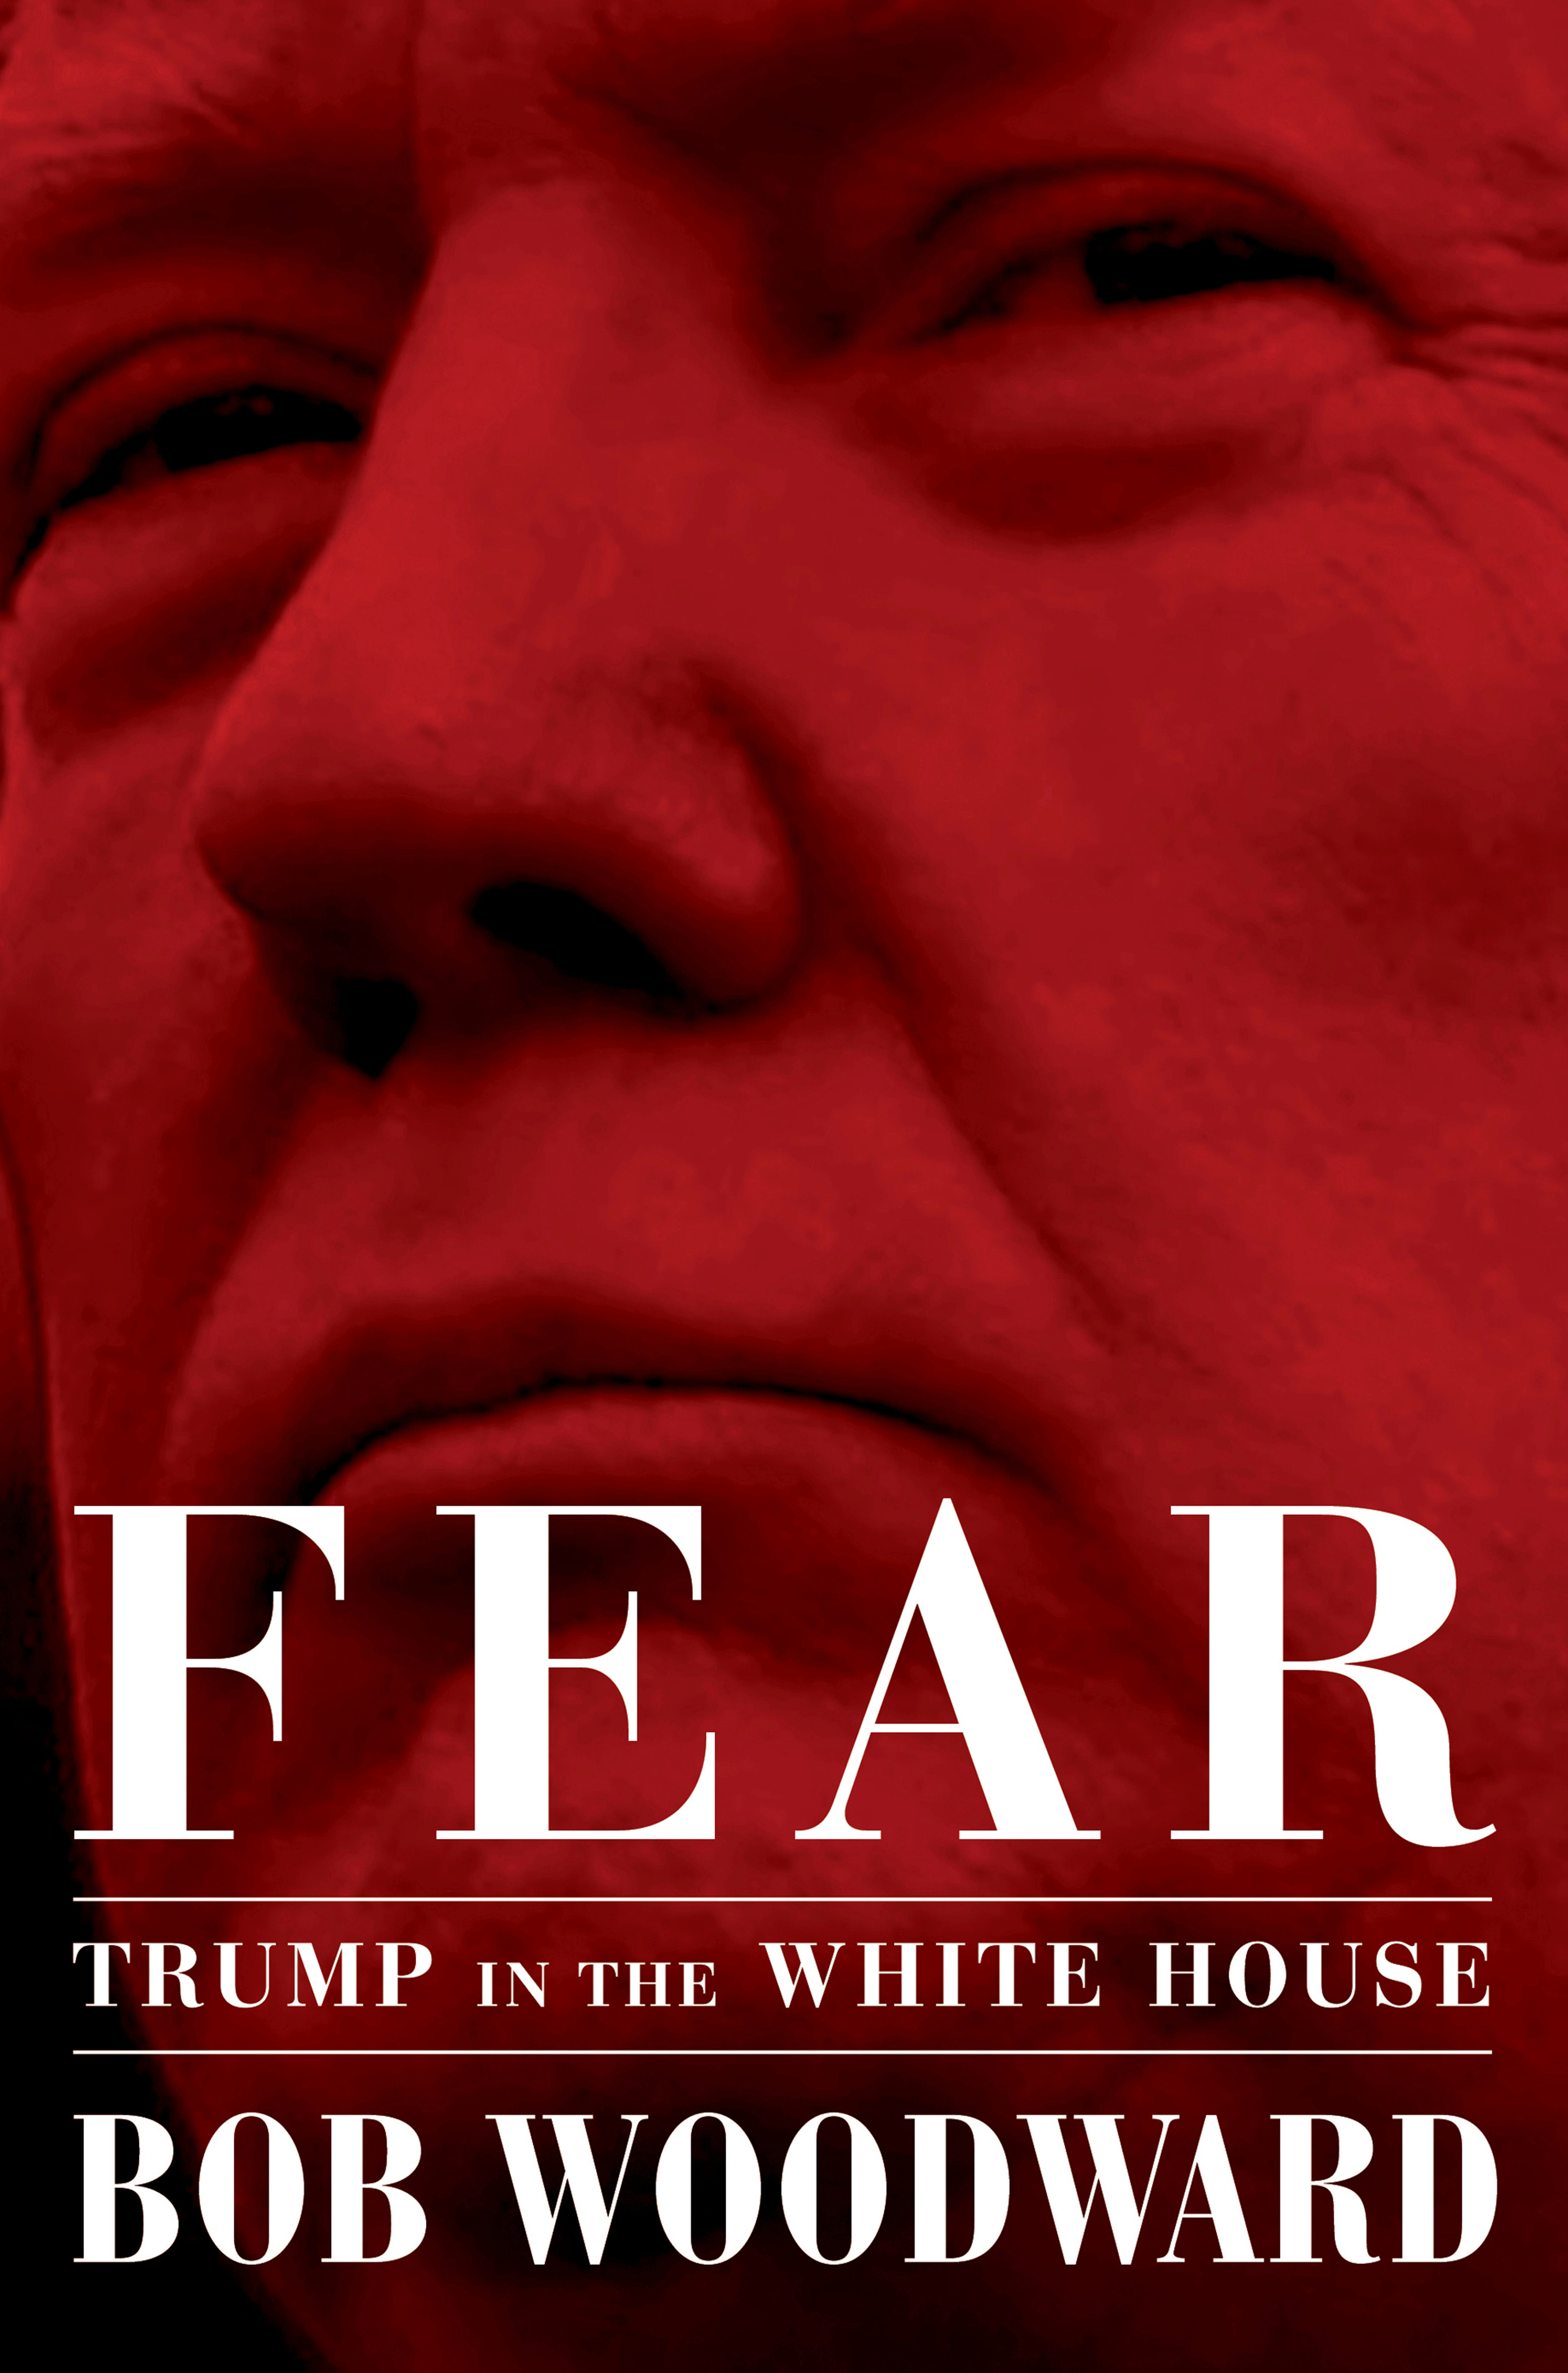 Trump in the White House  - Bob Woodward